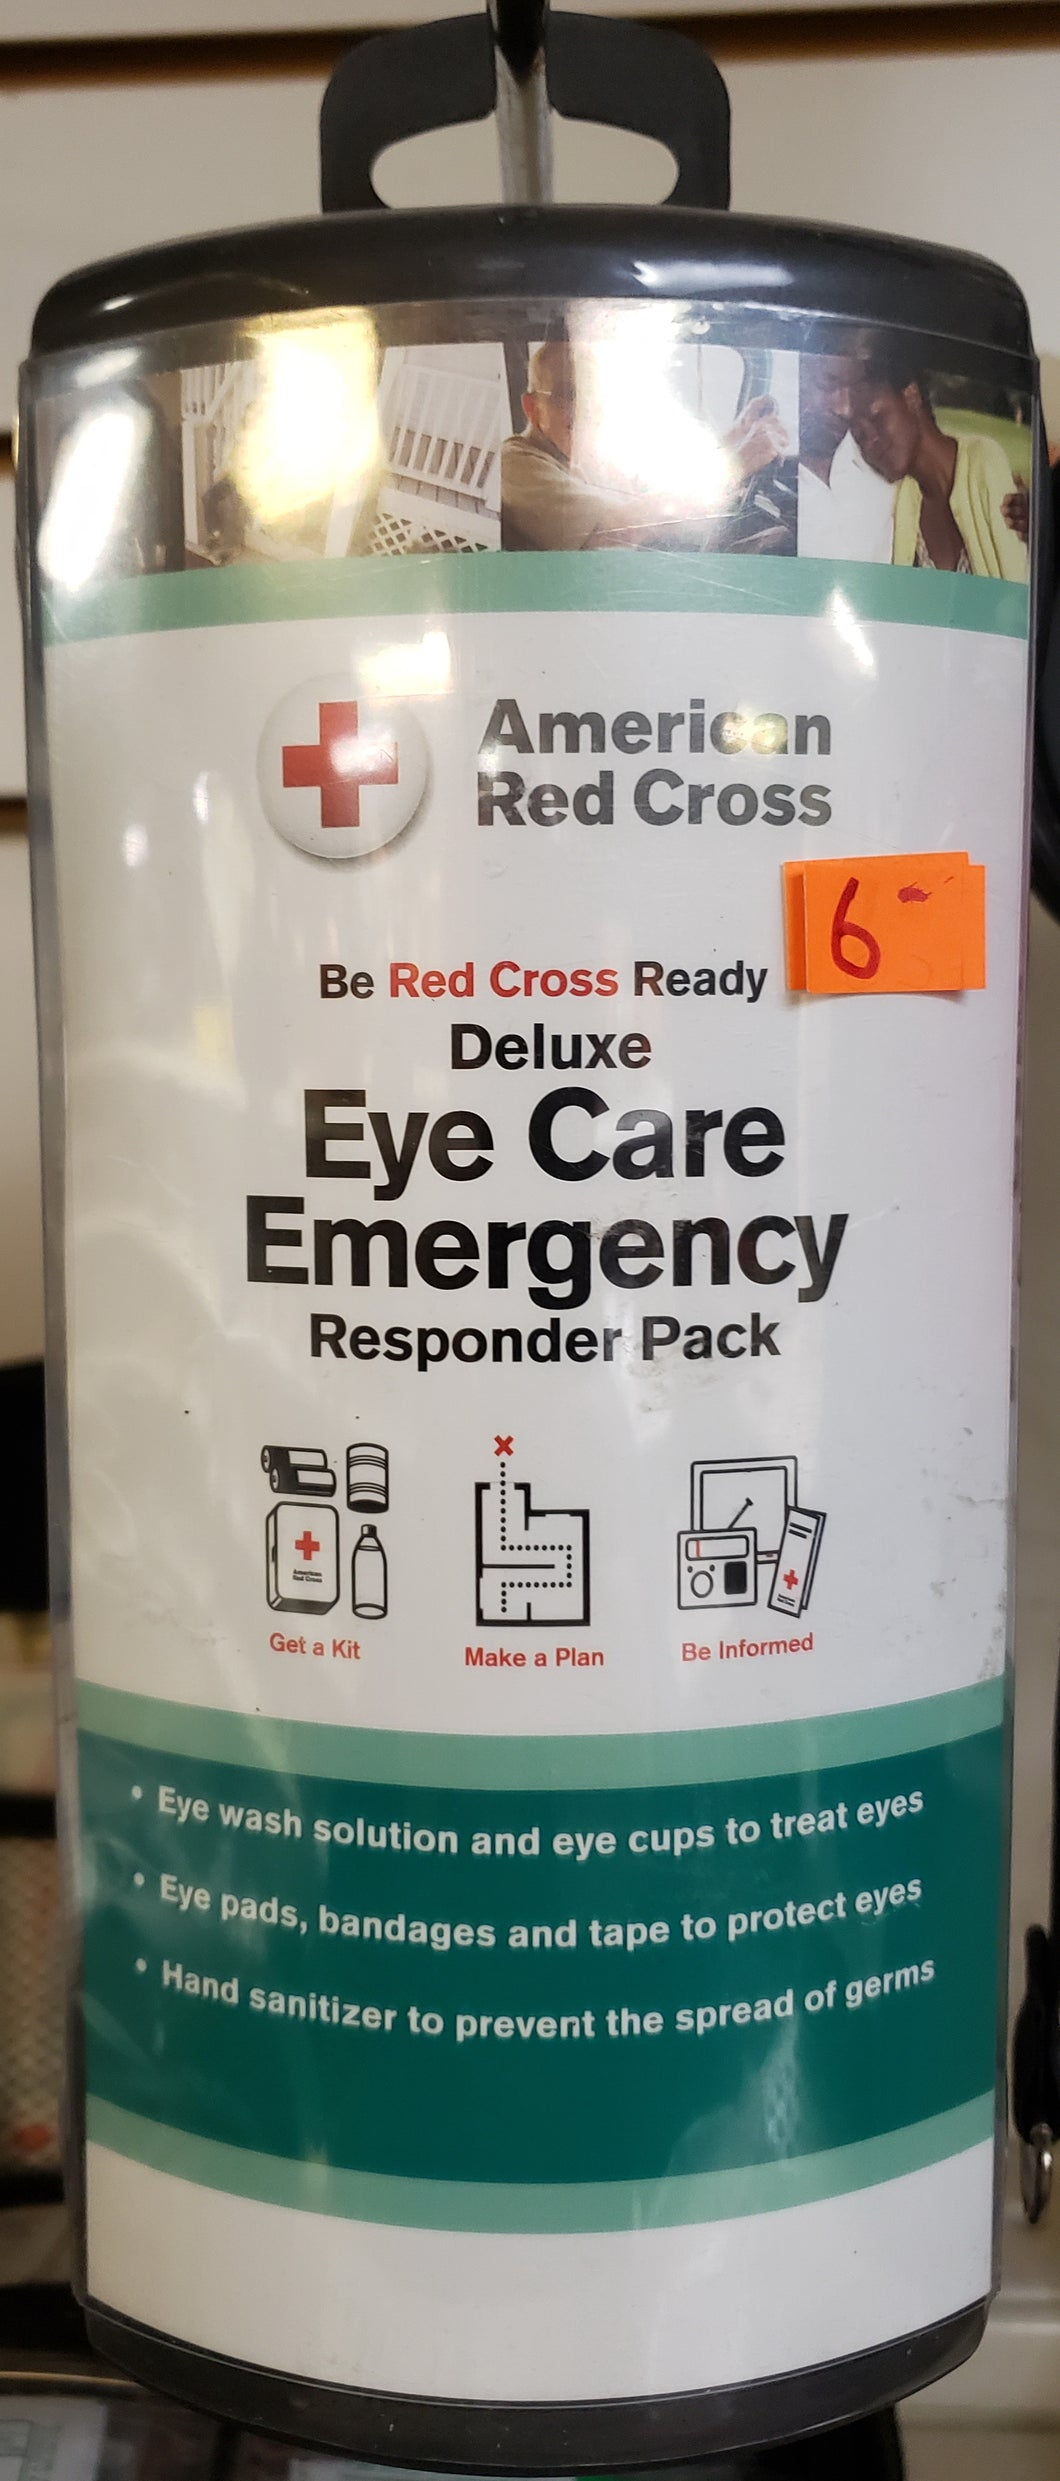 American Red Cross RC-684 Eye Care Emergency Responder Pack